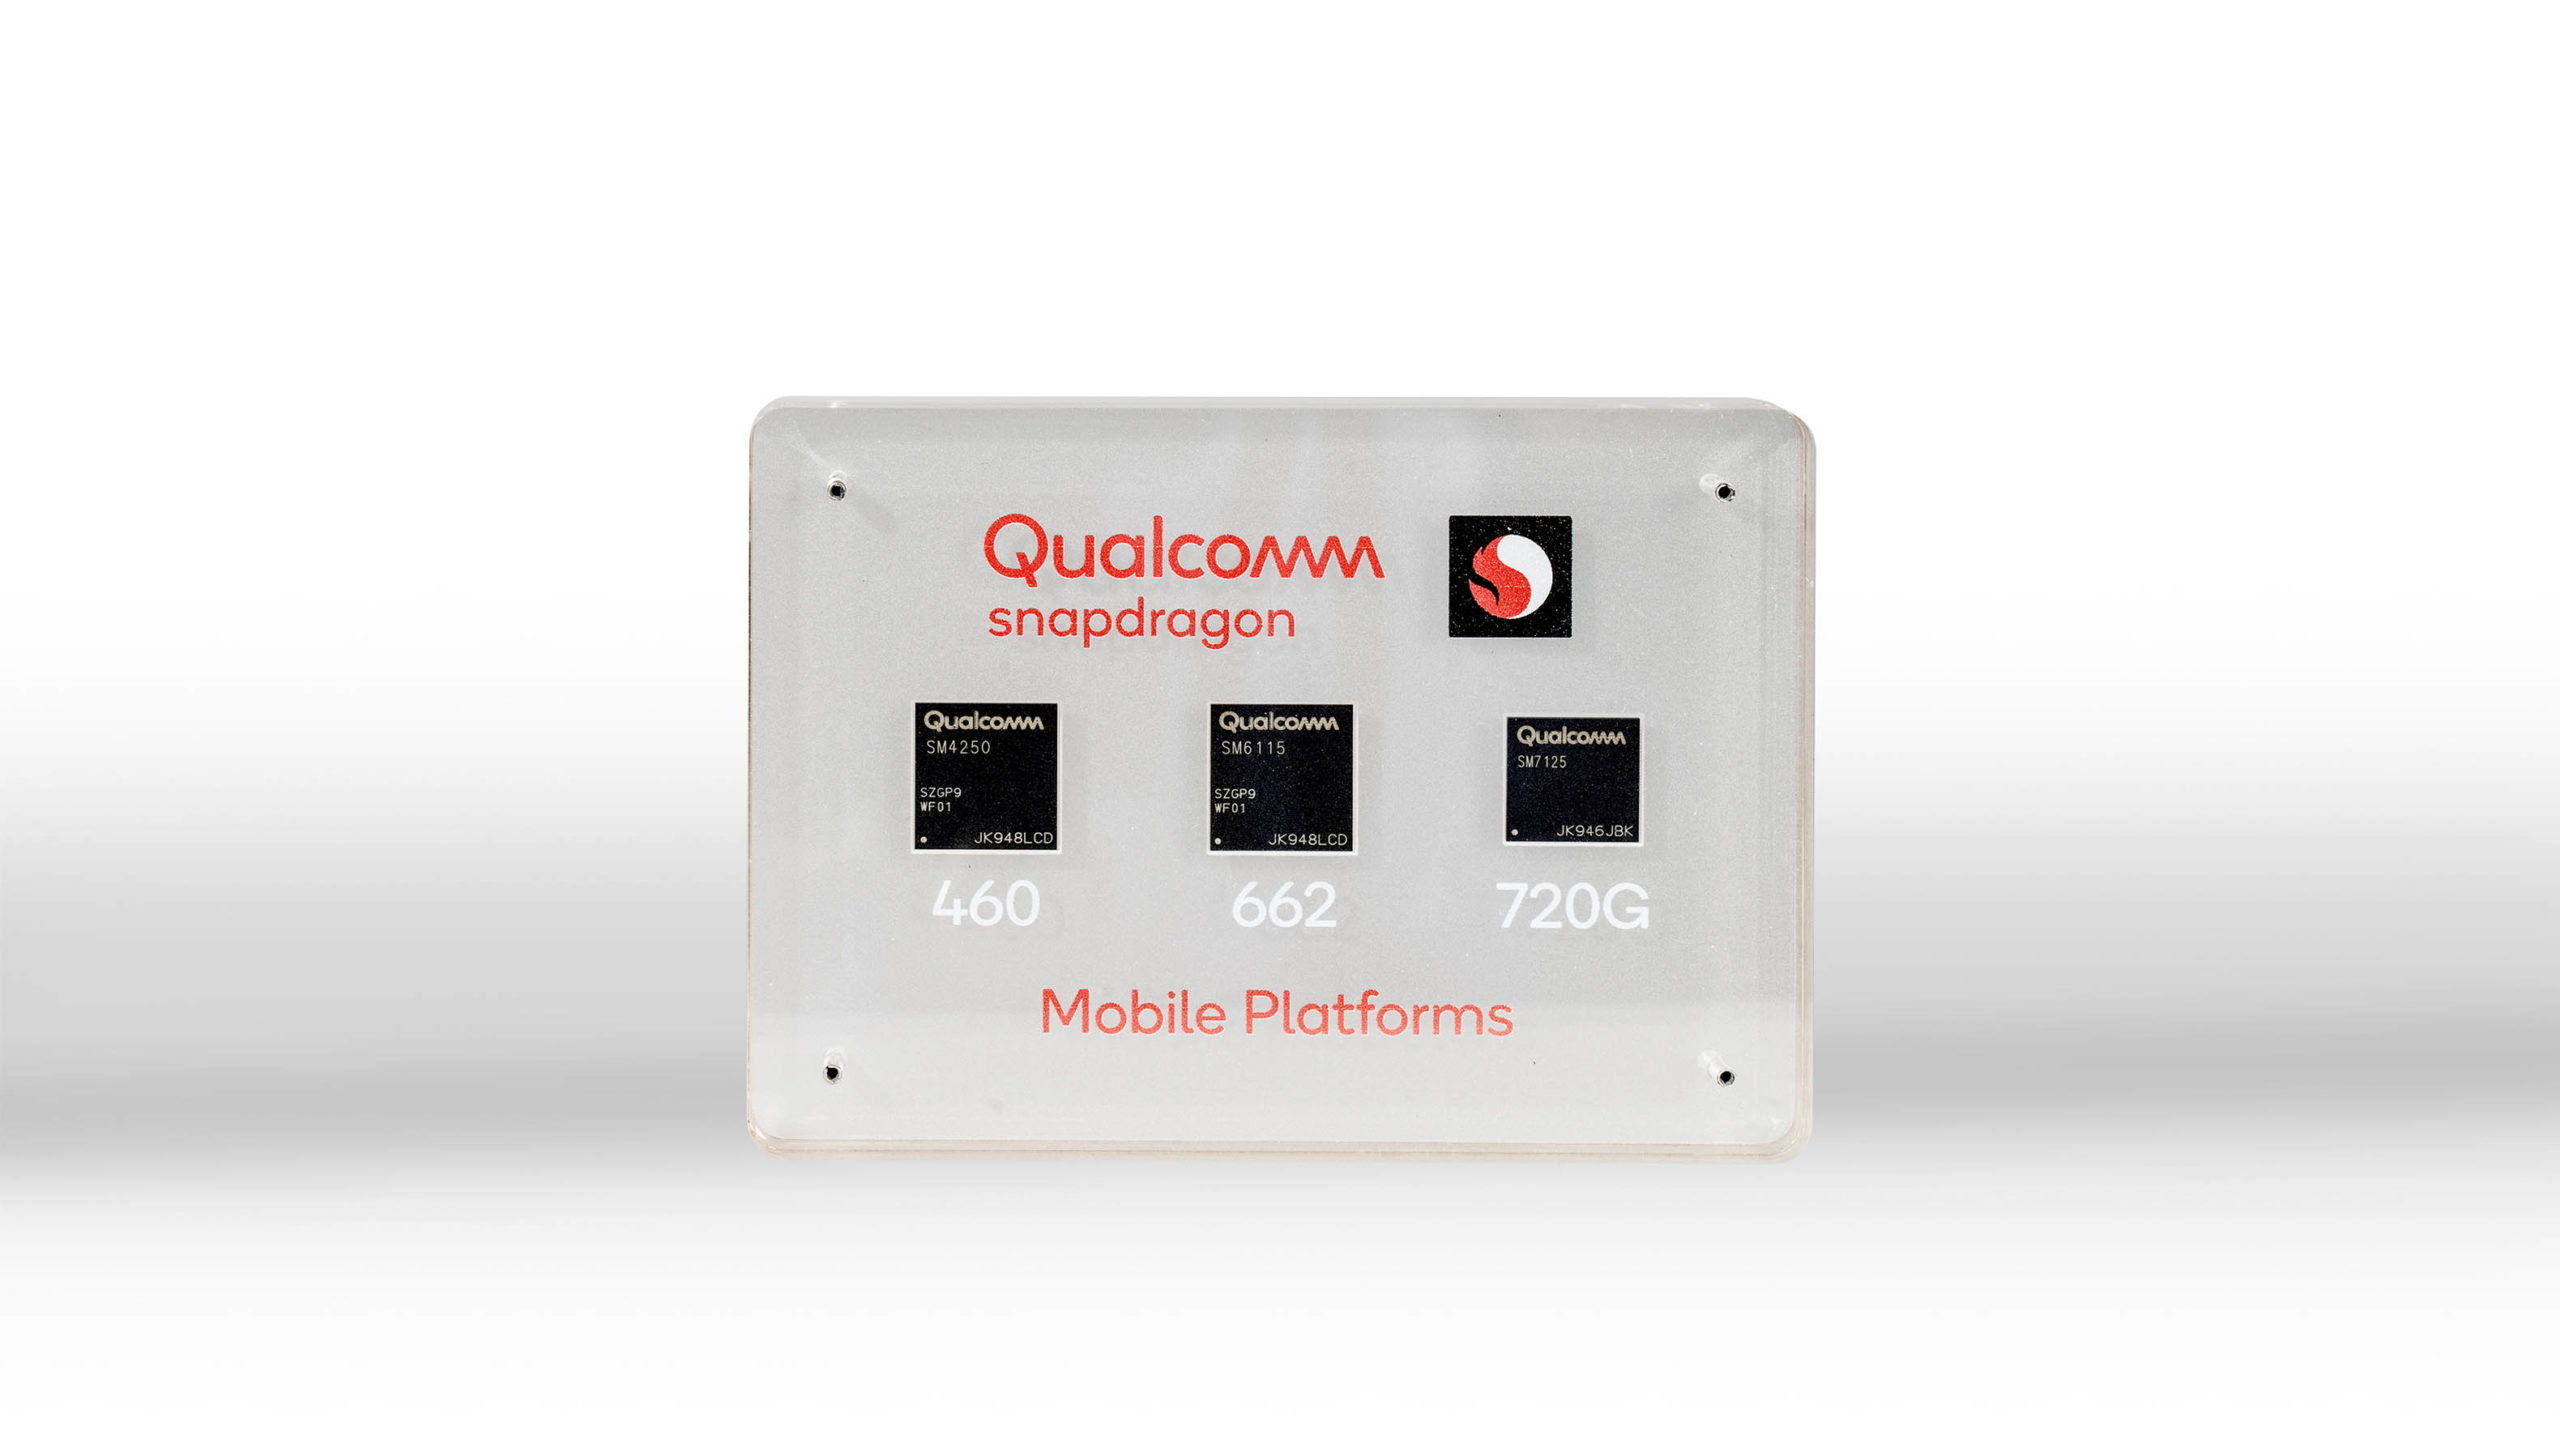 Qualcomm Snapdragon 720G, 662 and 460